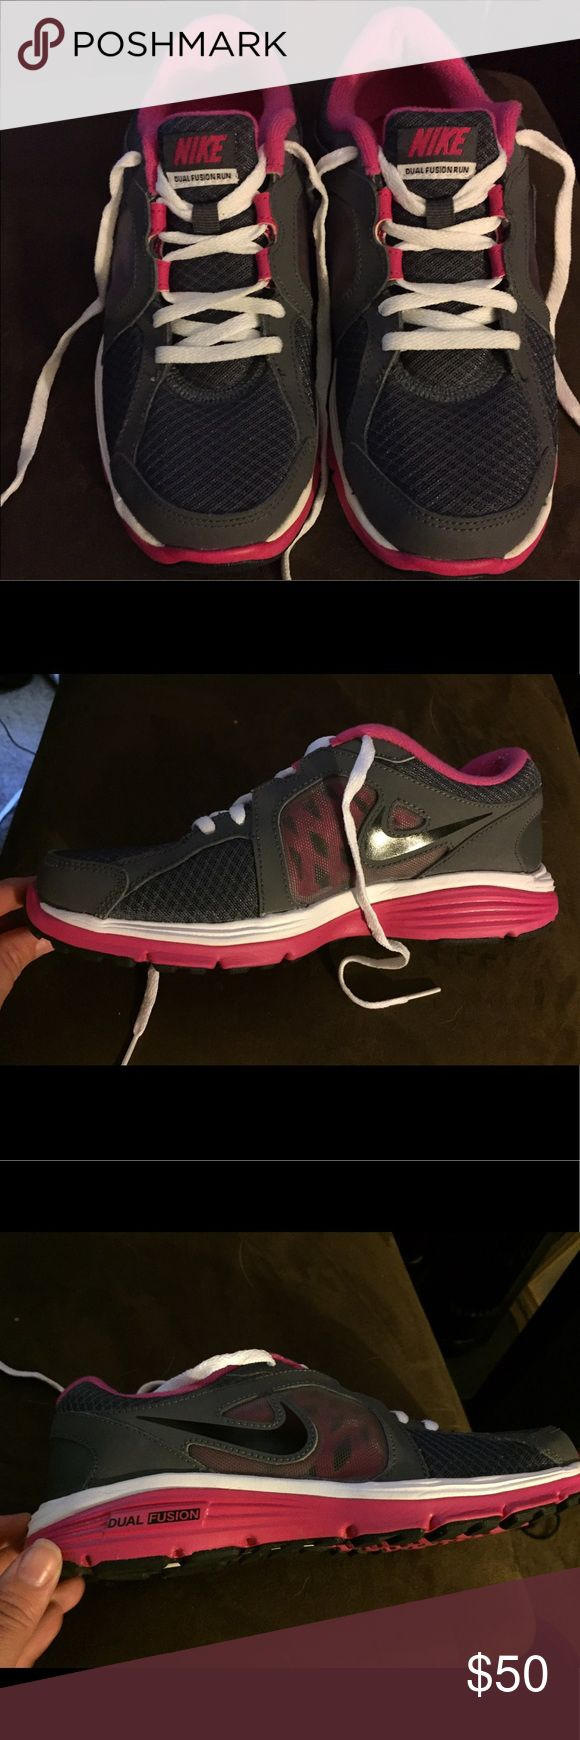 Nike dual fusion running sneakers Nike dual fusion running sneakers worn once. Size is 5Y, which would fit a women's size 6 1/2 - 7. Open to reasonable negotiations! 🏃🏻‍♀️💕 Nike Shoes Sneakers